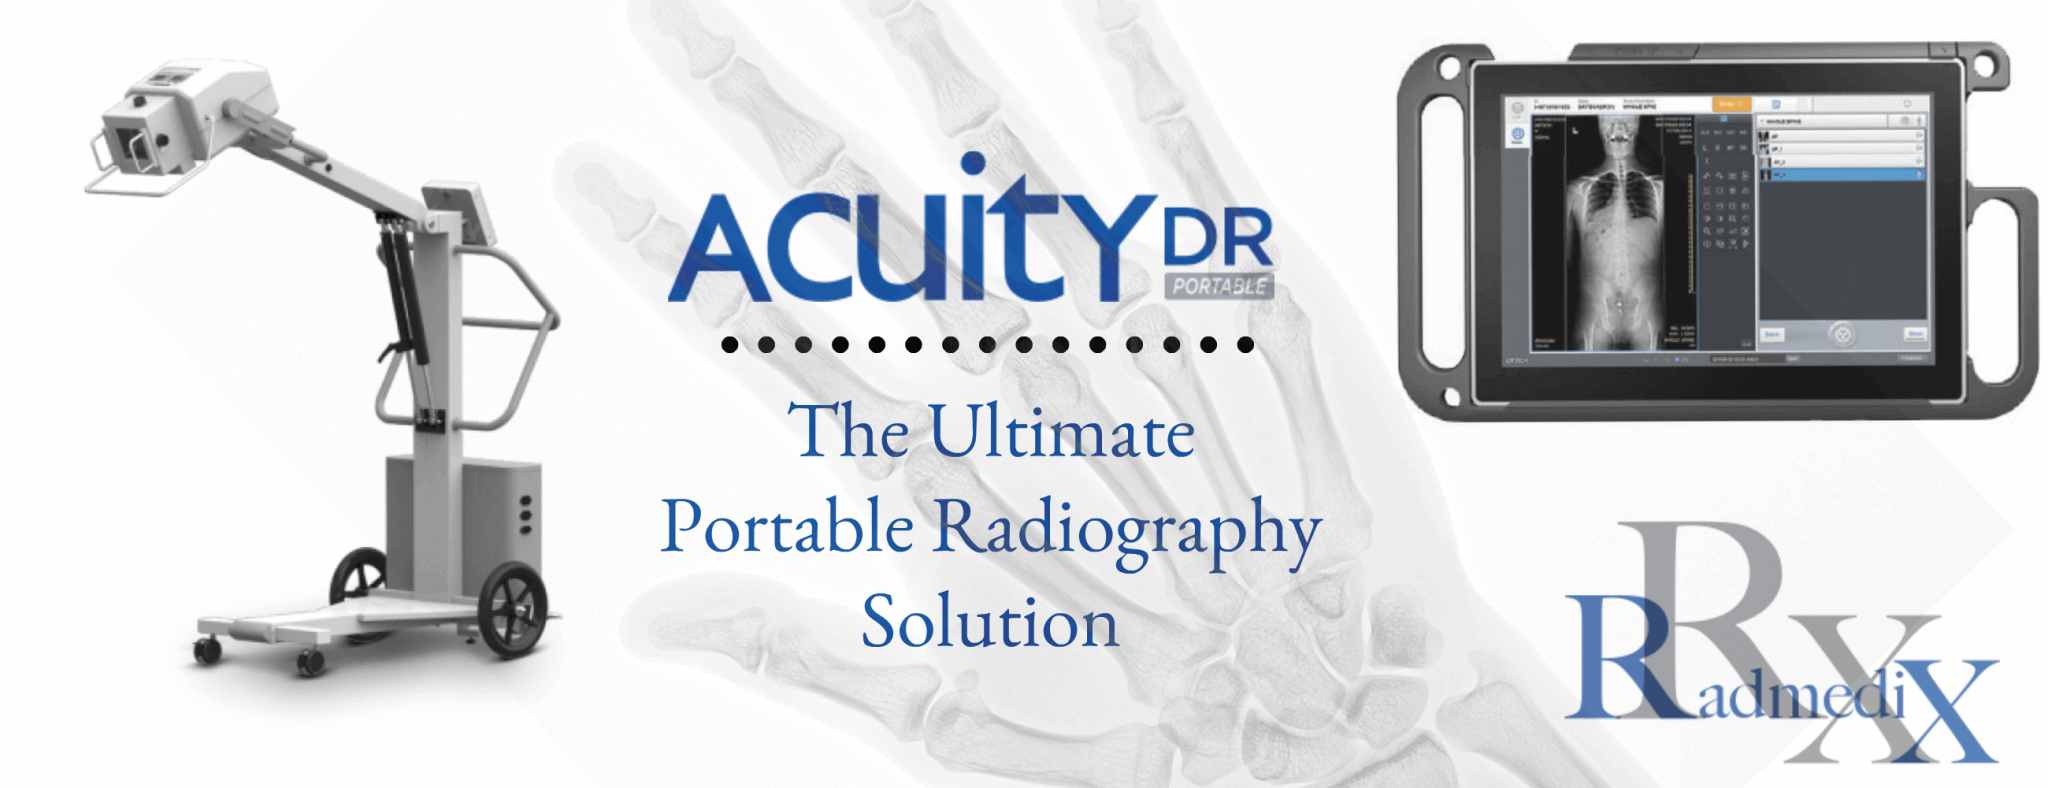 RadmediX offers the Ultimate Portable X-Ray System for Mobile Care